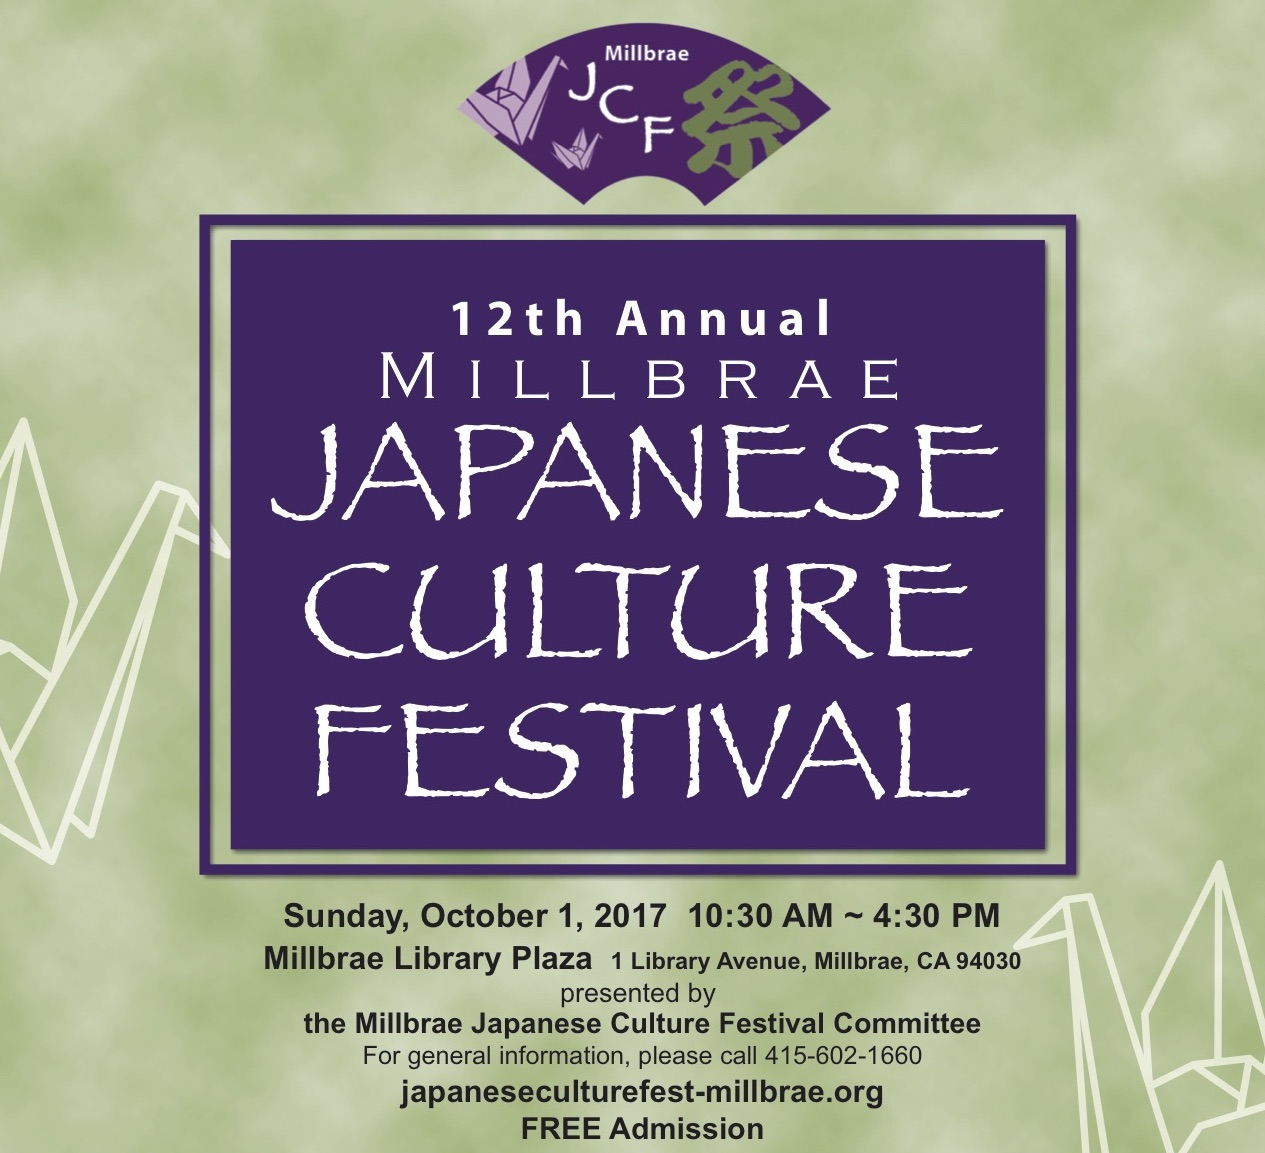 10-1-17 Japanese Culture Festival square